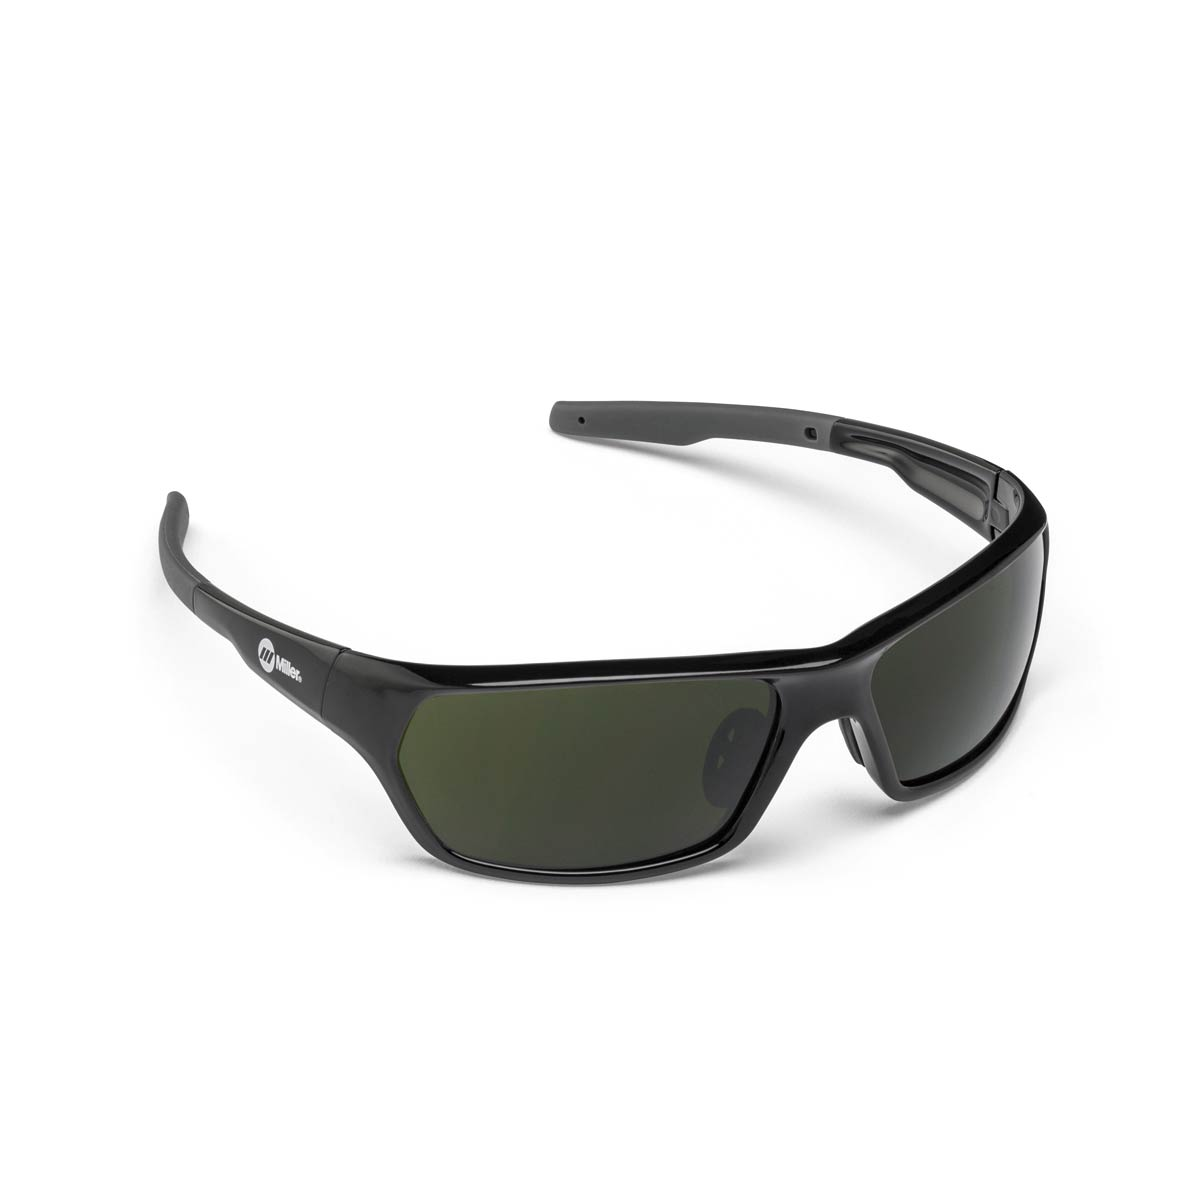 SAFETY GLASSES SLAG BLACK #5. Part: 272205. Pack: 1